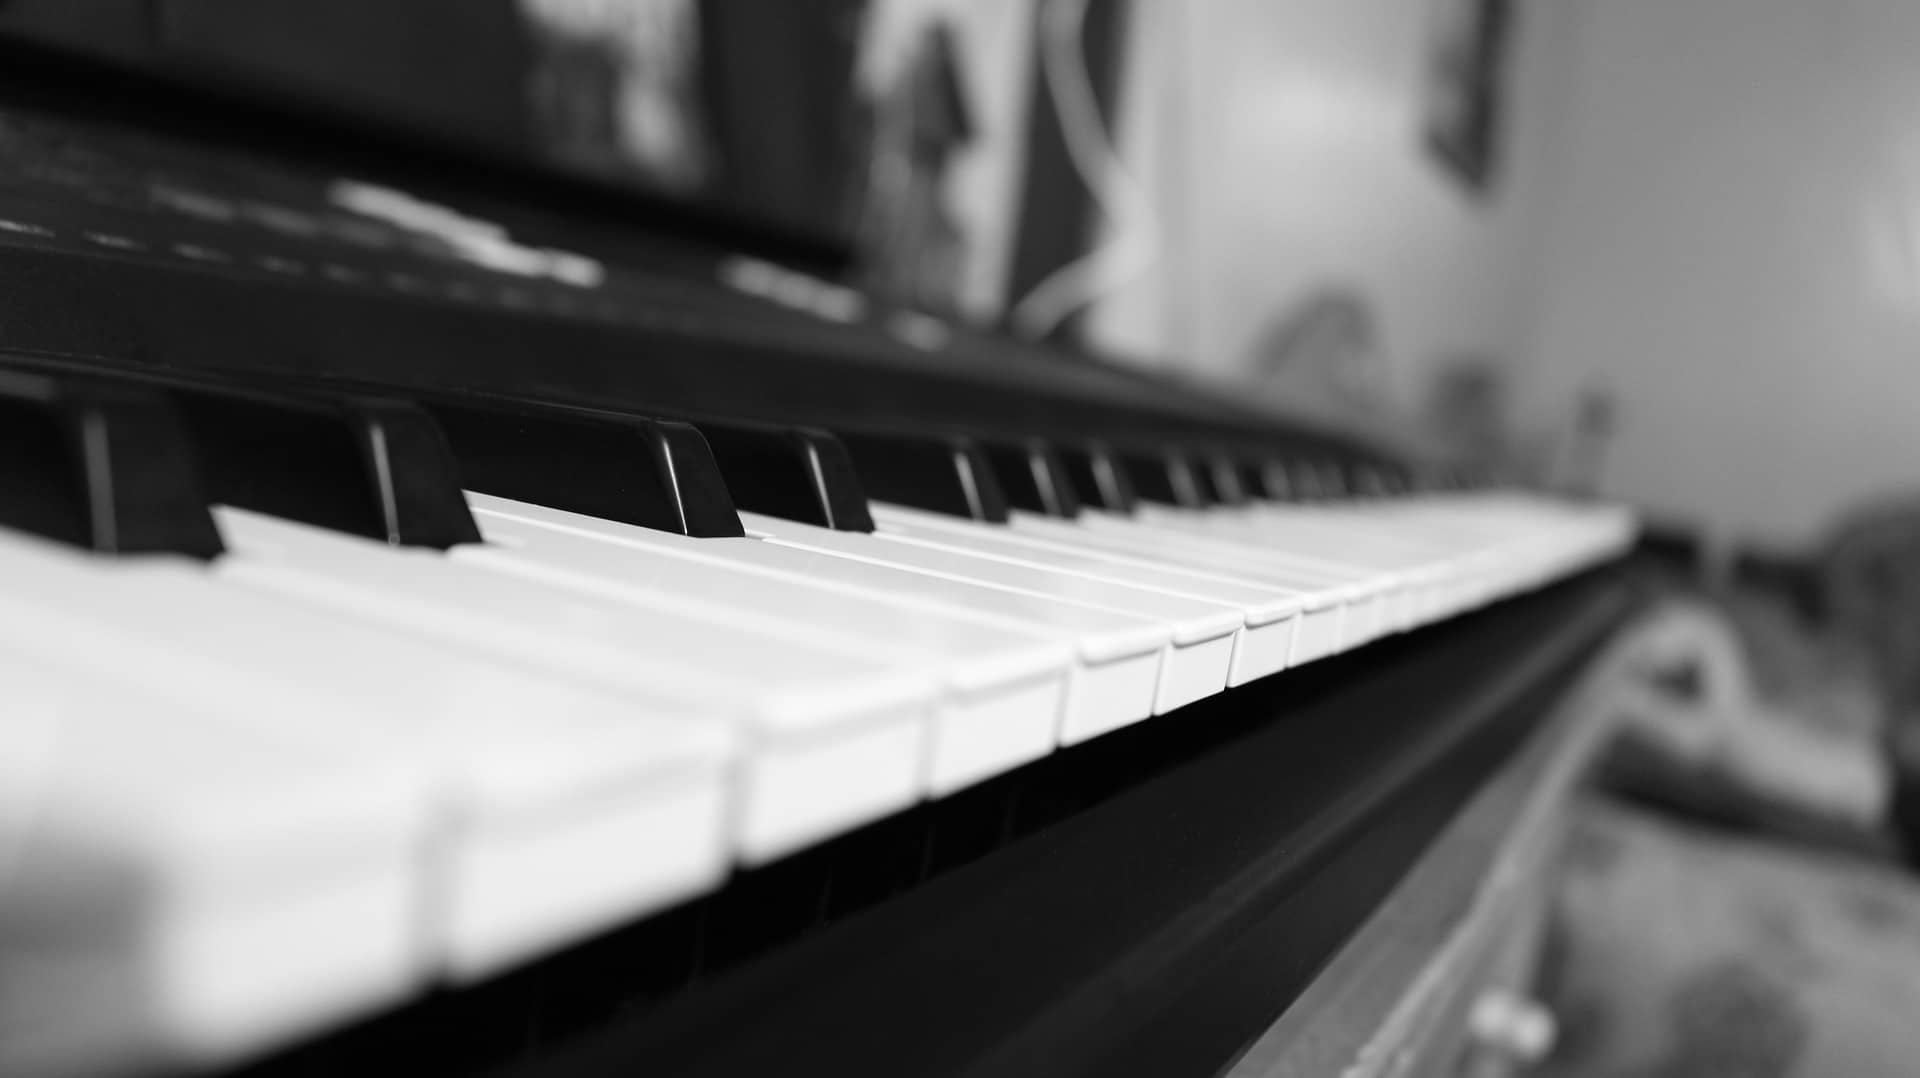 Keyboard - How to Evaluate a Good Digital Piano